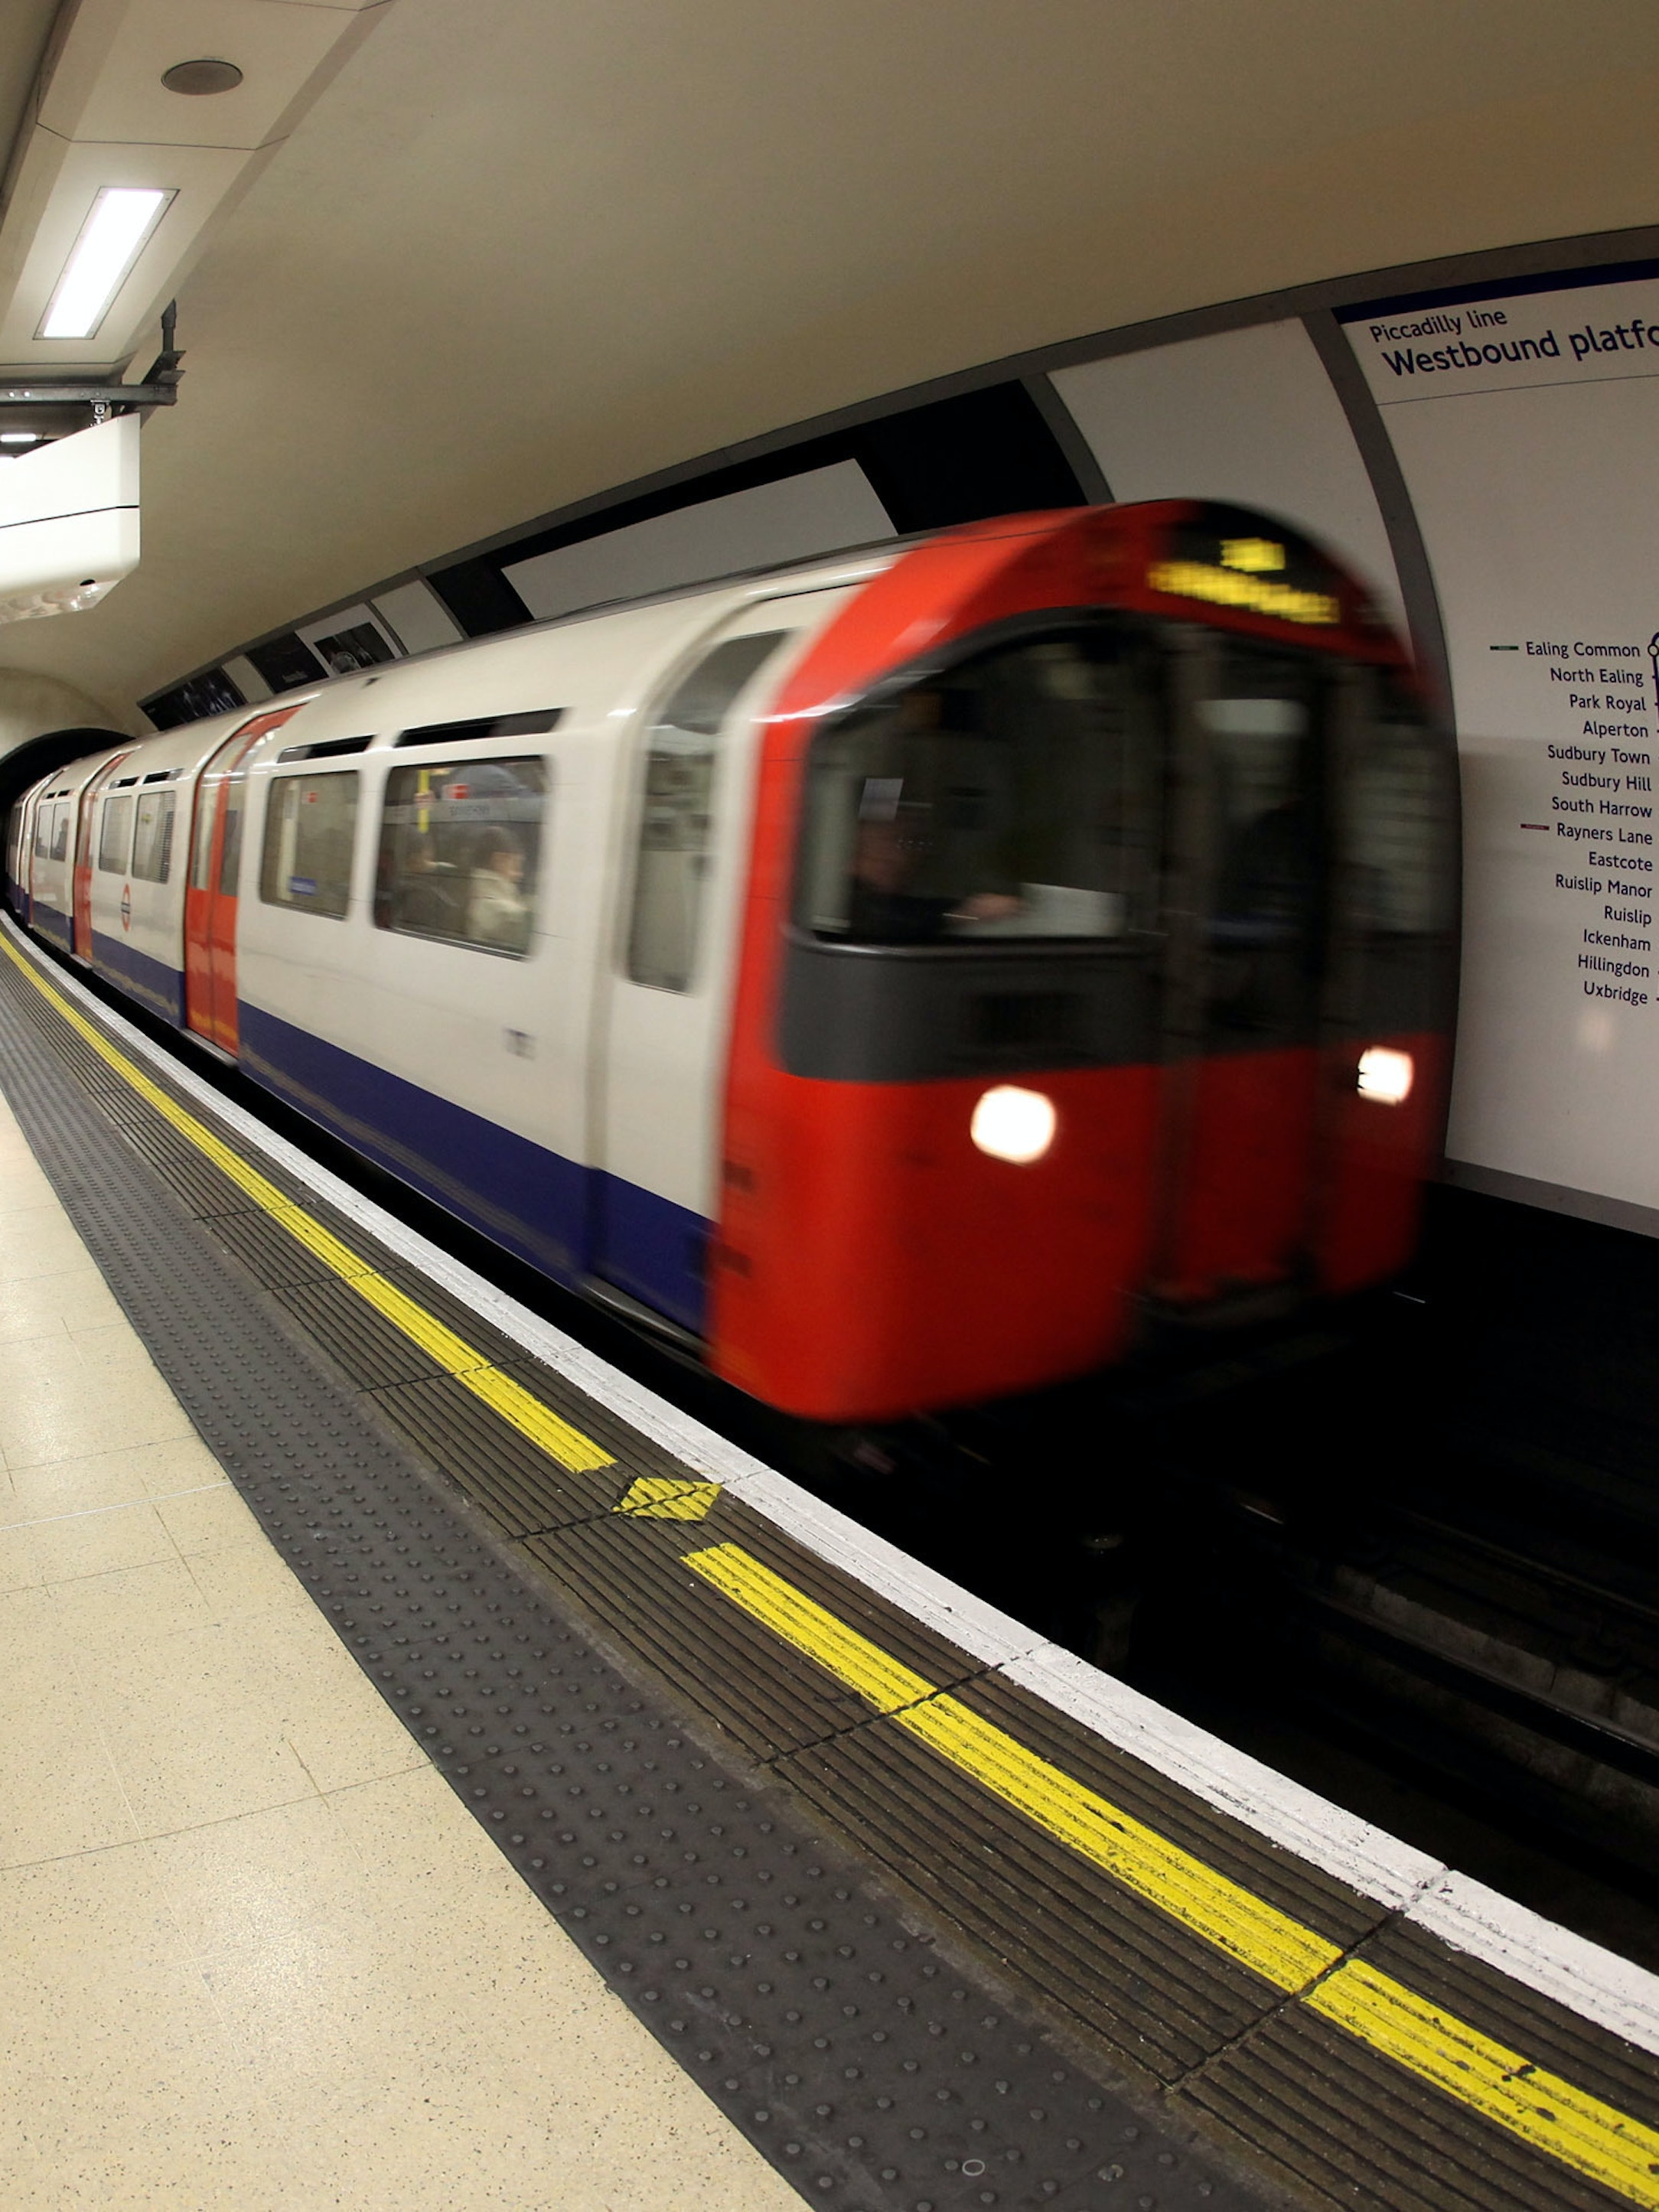 LONDON, ENGLAND - MARCH 30:  A London Underground train arrives in Knightsbridge station on March 30, 2010 in London, England. London Underground workers are to be balloted for strike action in a dispute over the company's proposed cutting of 800 jobs in a bid to save 16m GBP per year. News of the potential Tube strike follows seven days of industrial action taken by British Airways cabin crew and the possibility of the first national rail strike in 16 years.  (Photo by Oli Scarff/Getty Images)